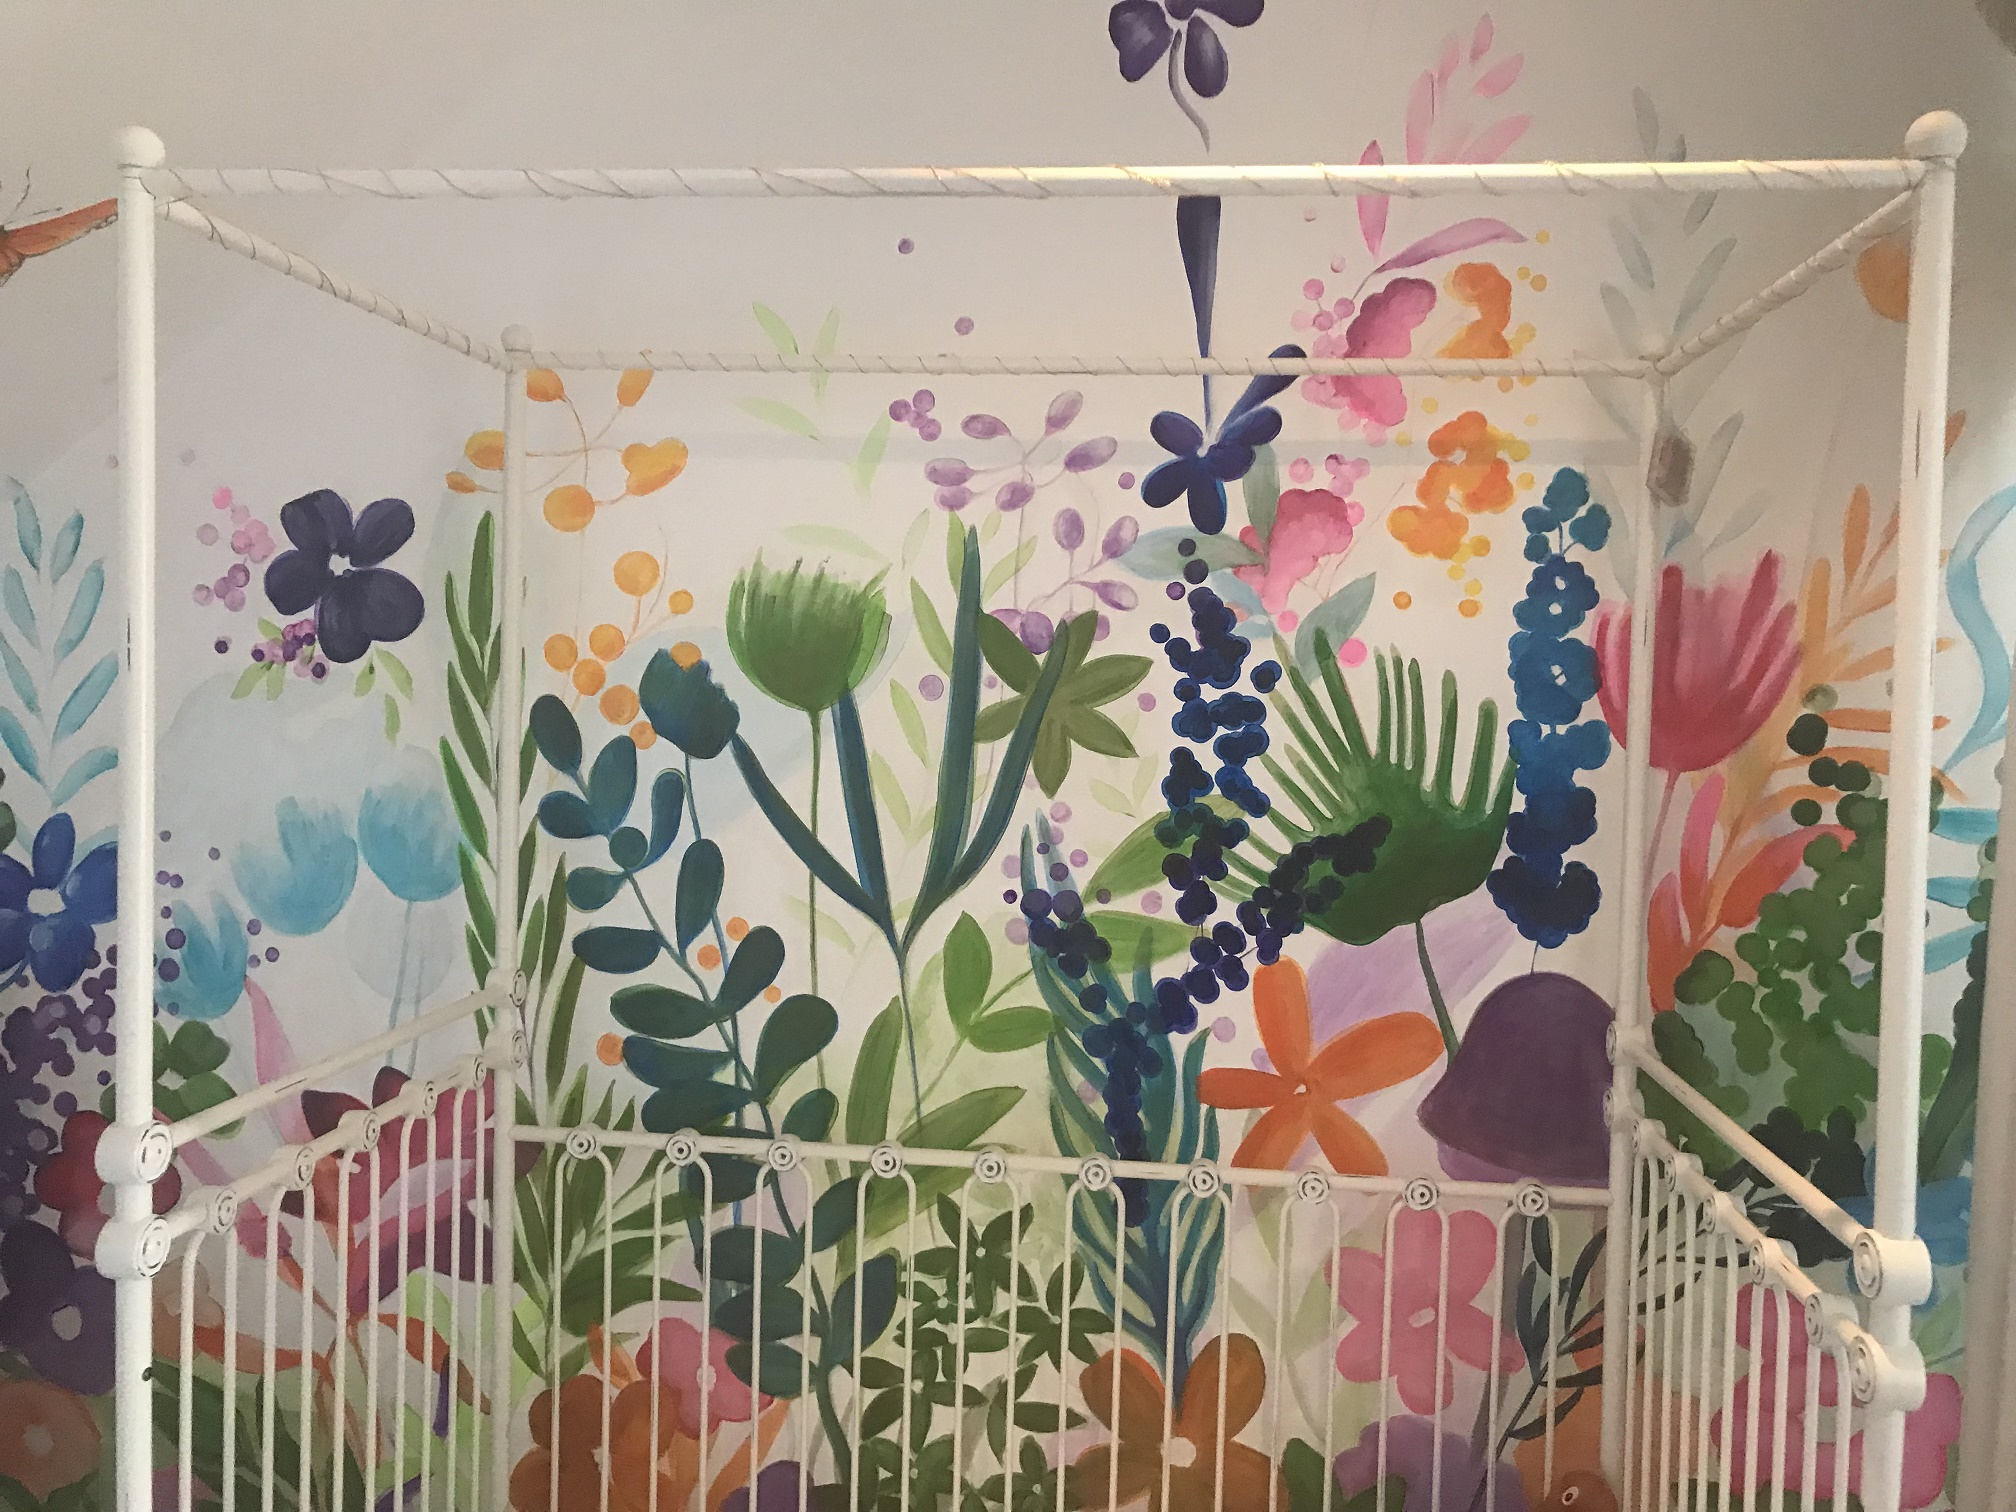 Murals By Marg - Spring Flowers Mural 6.